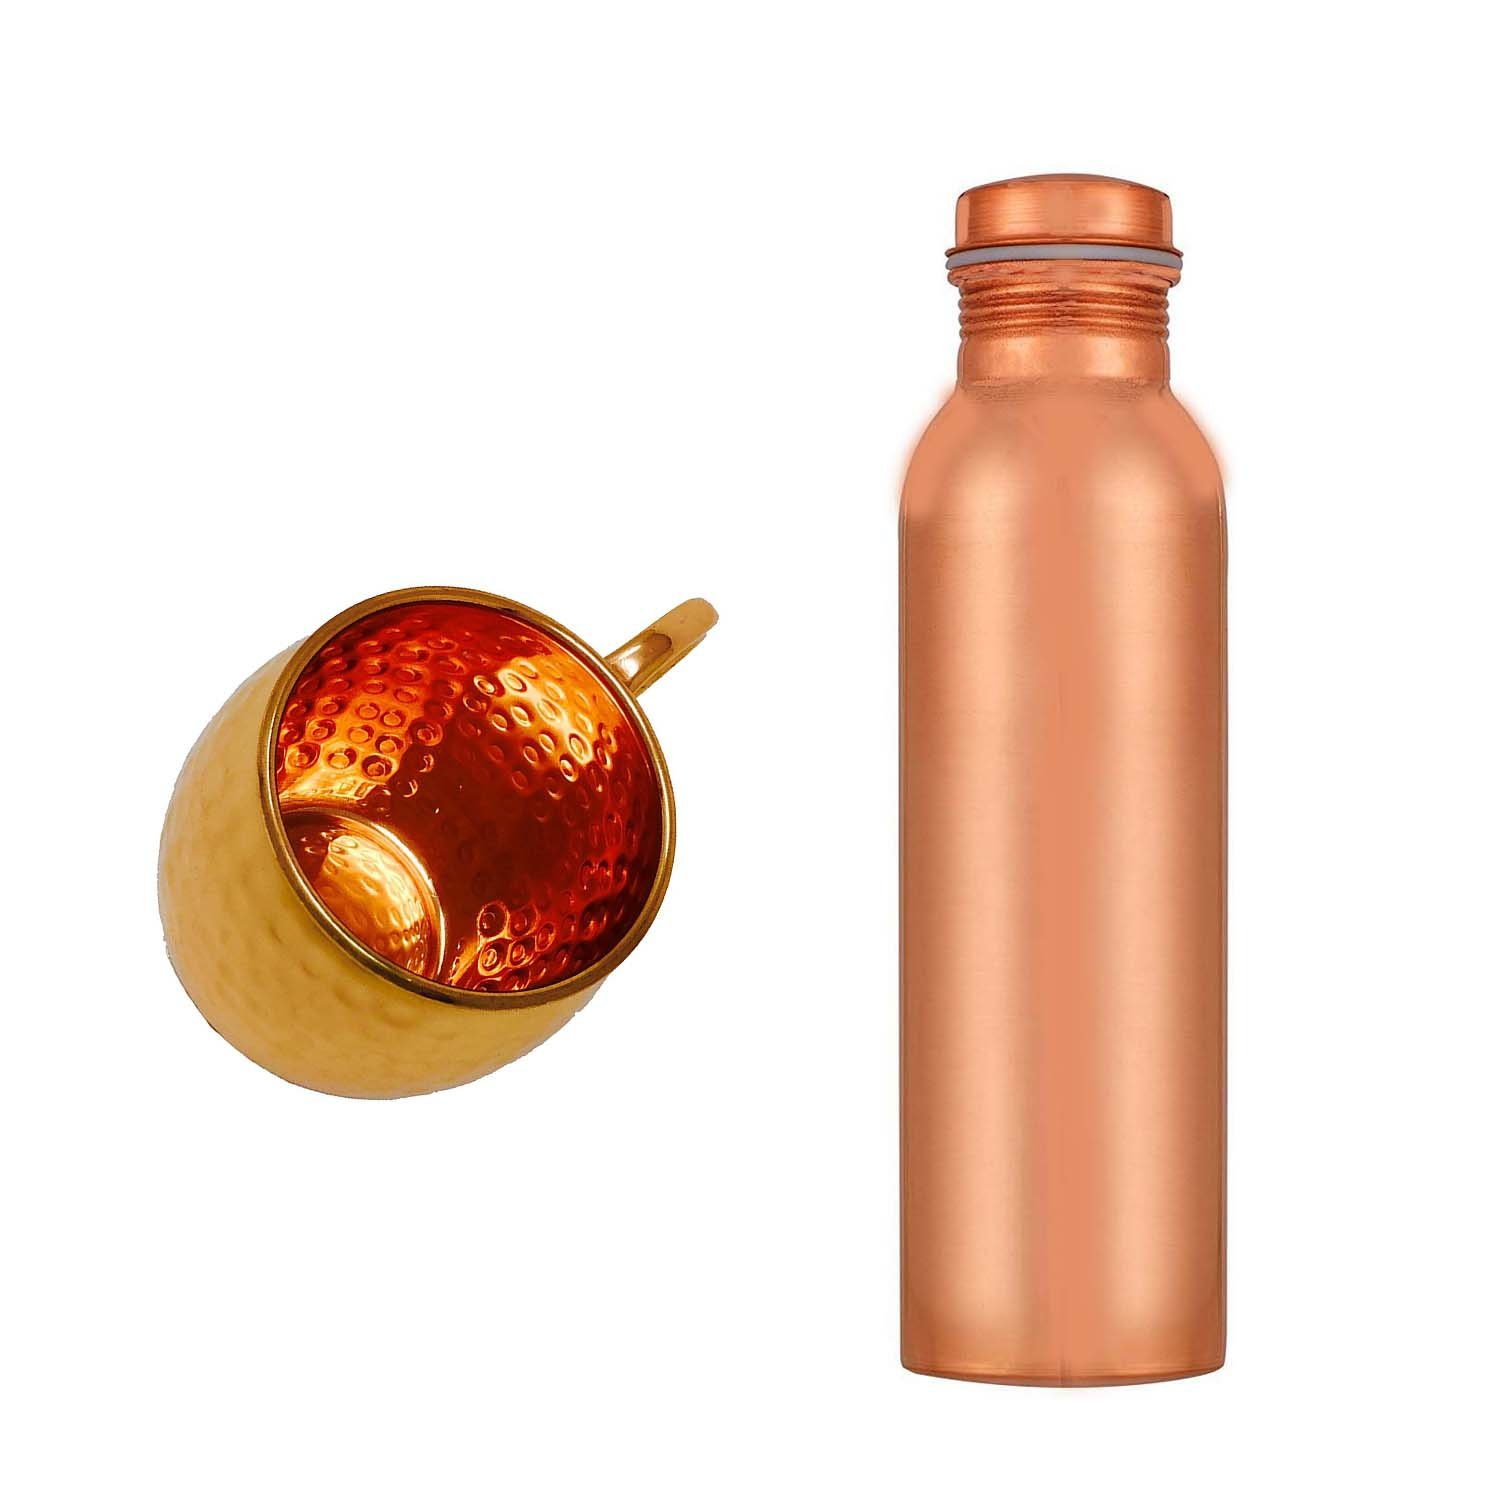 Copper Splash 30oz/900mll Pure Copper Water Bottle and 16oz hammered Moscow Mule Mug Bundle CopperSplash CM10